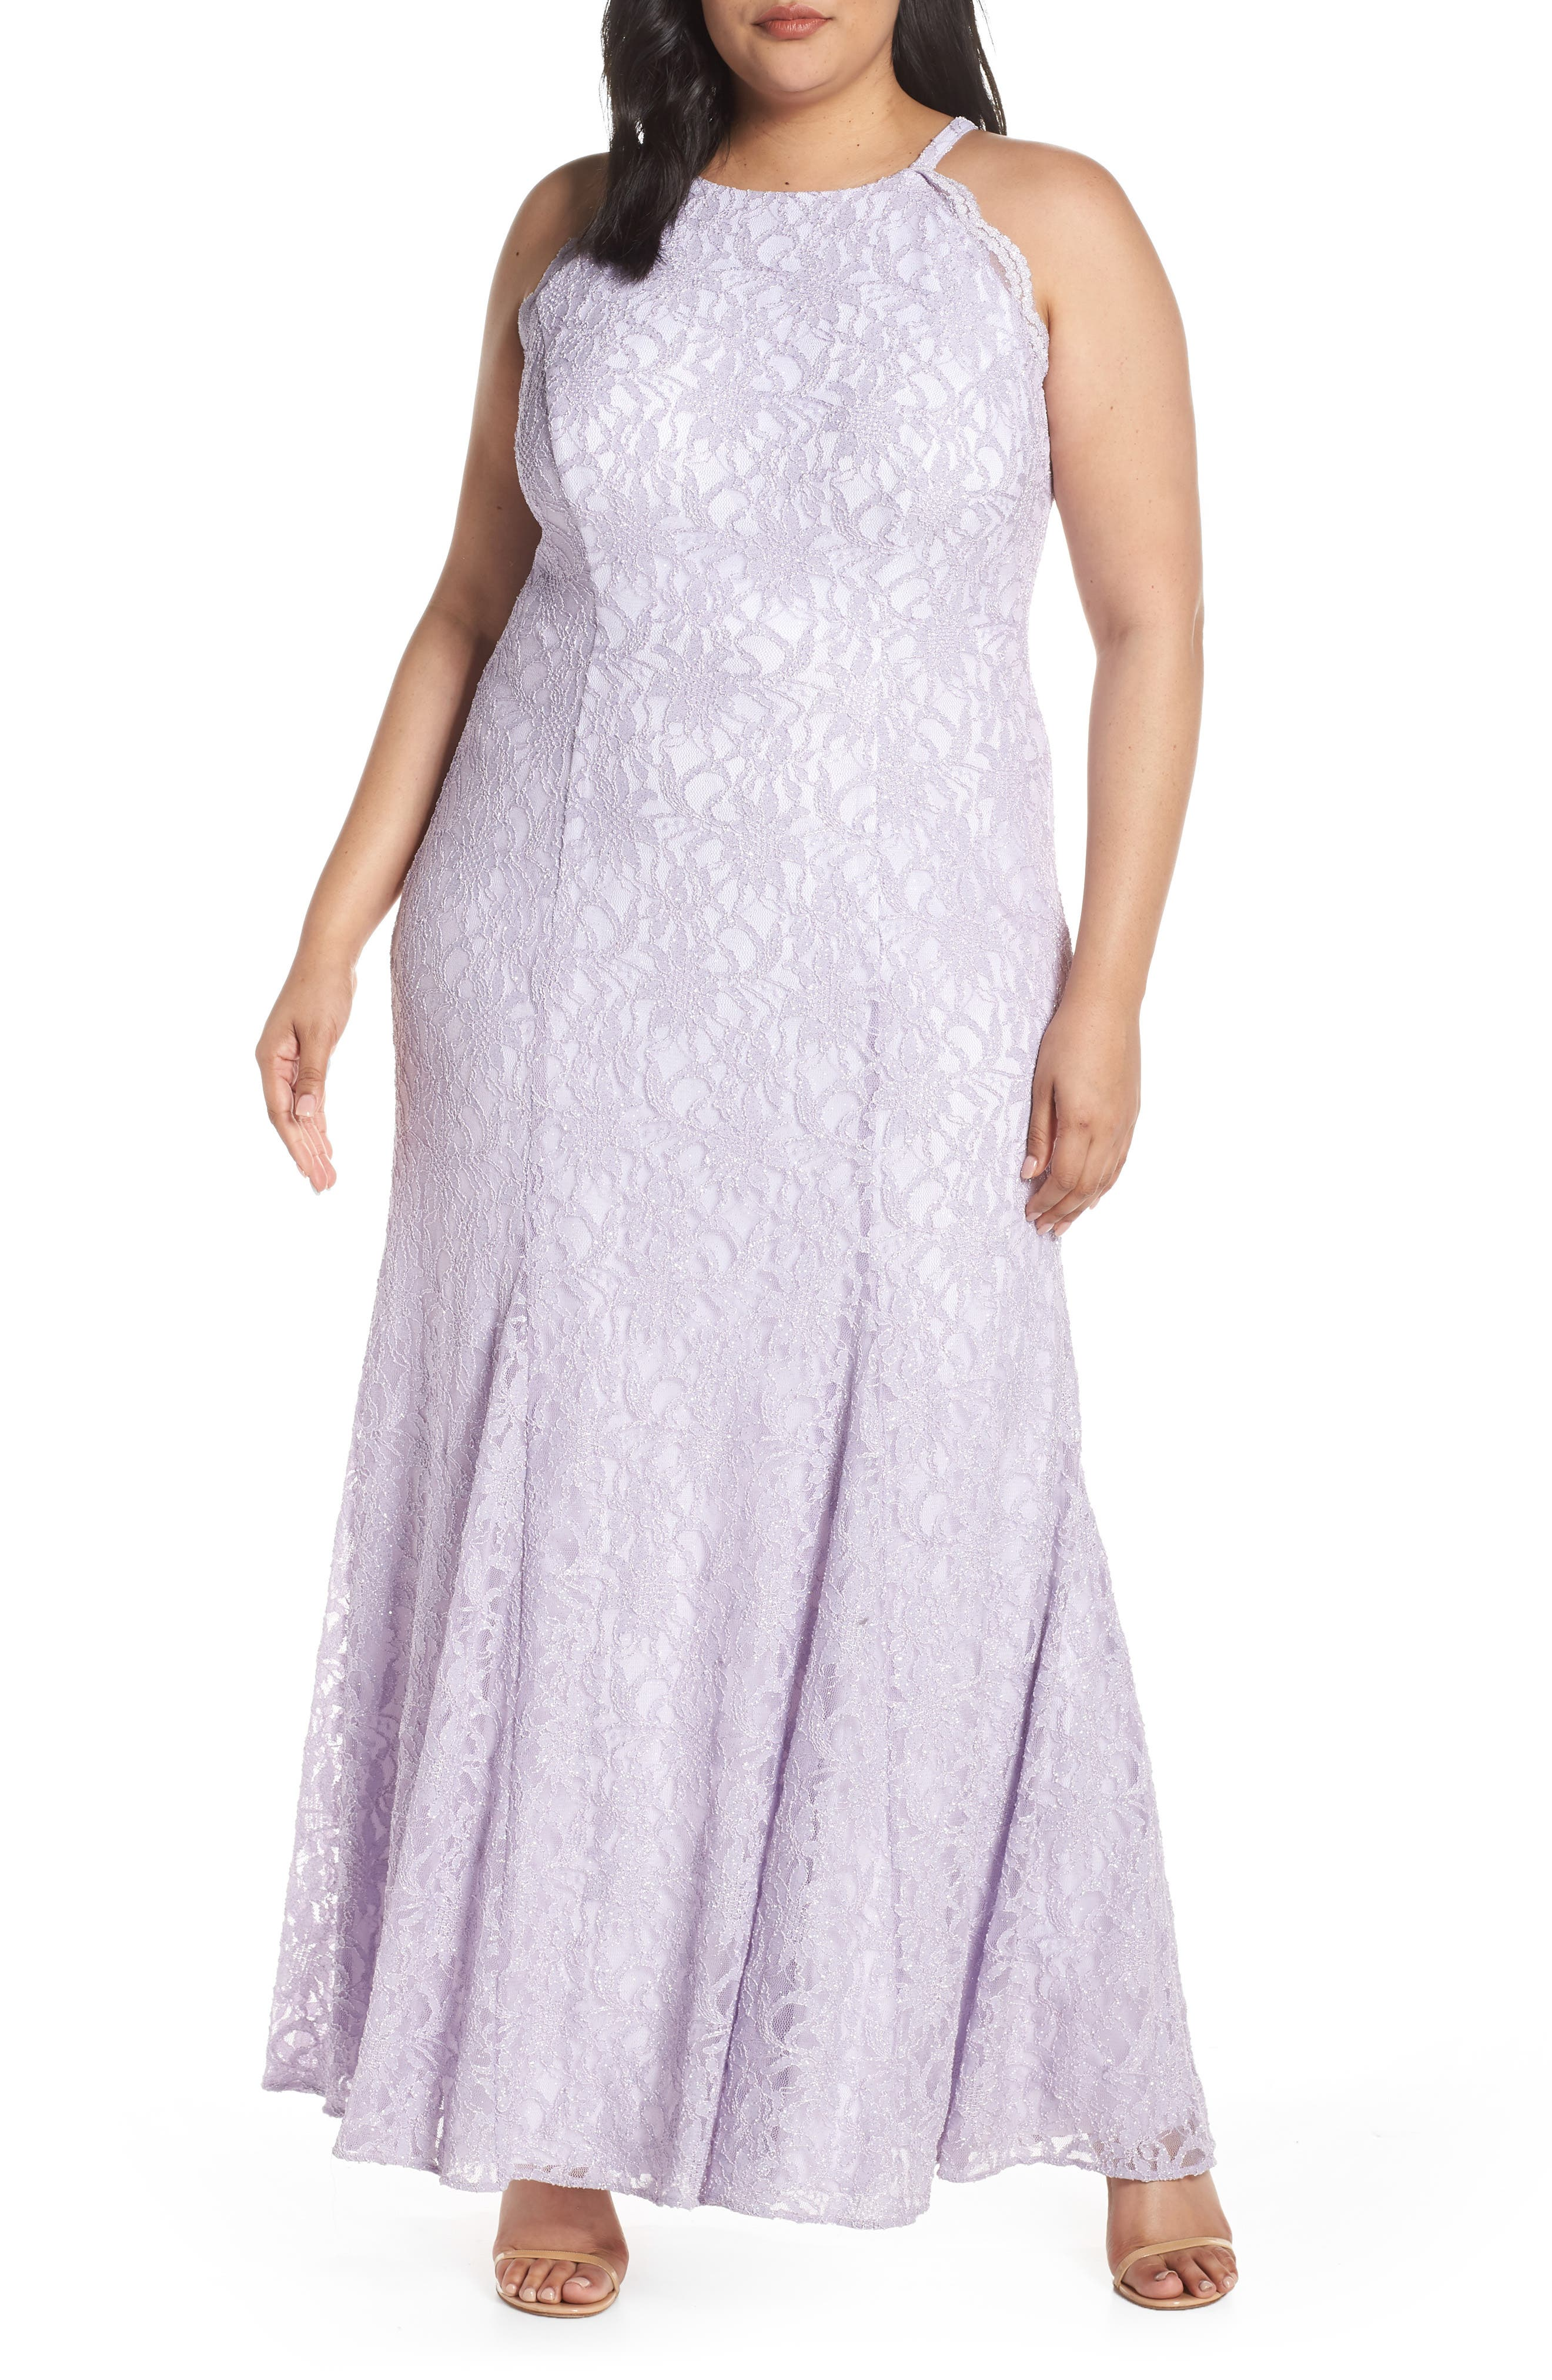 Plus Size Morgan & Co. Halter Bodice Glitter Lace Evening Dress, Purple